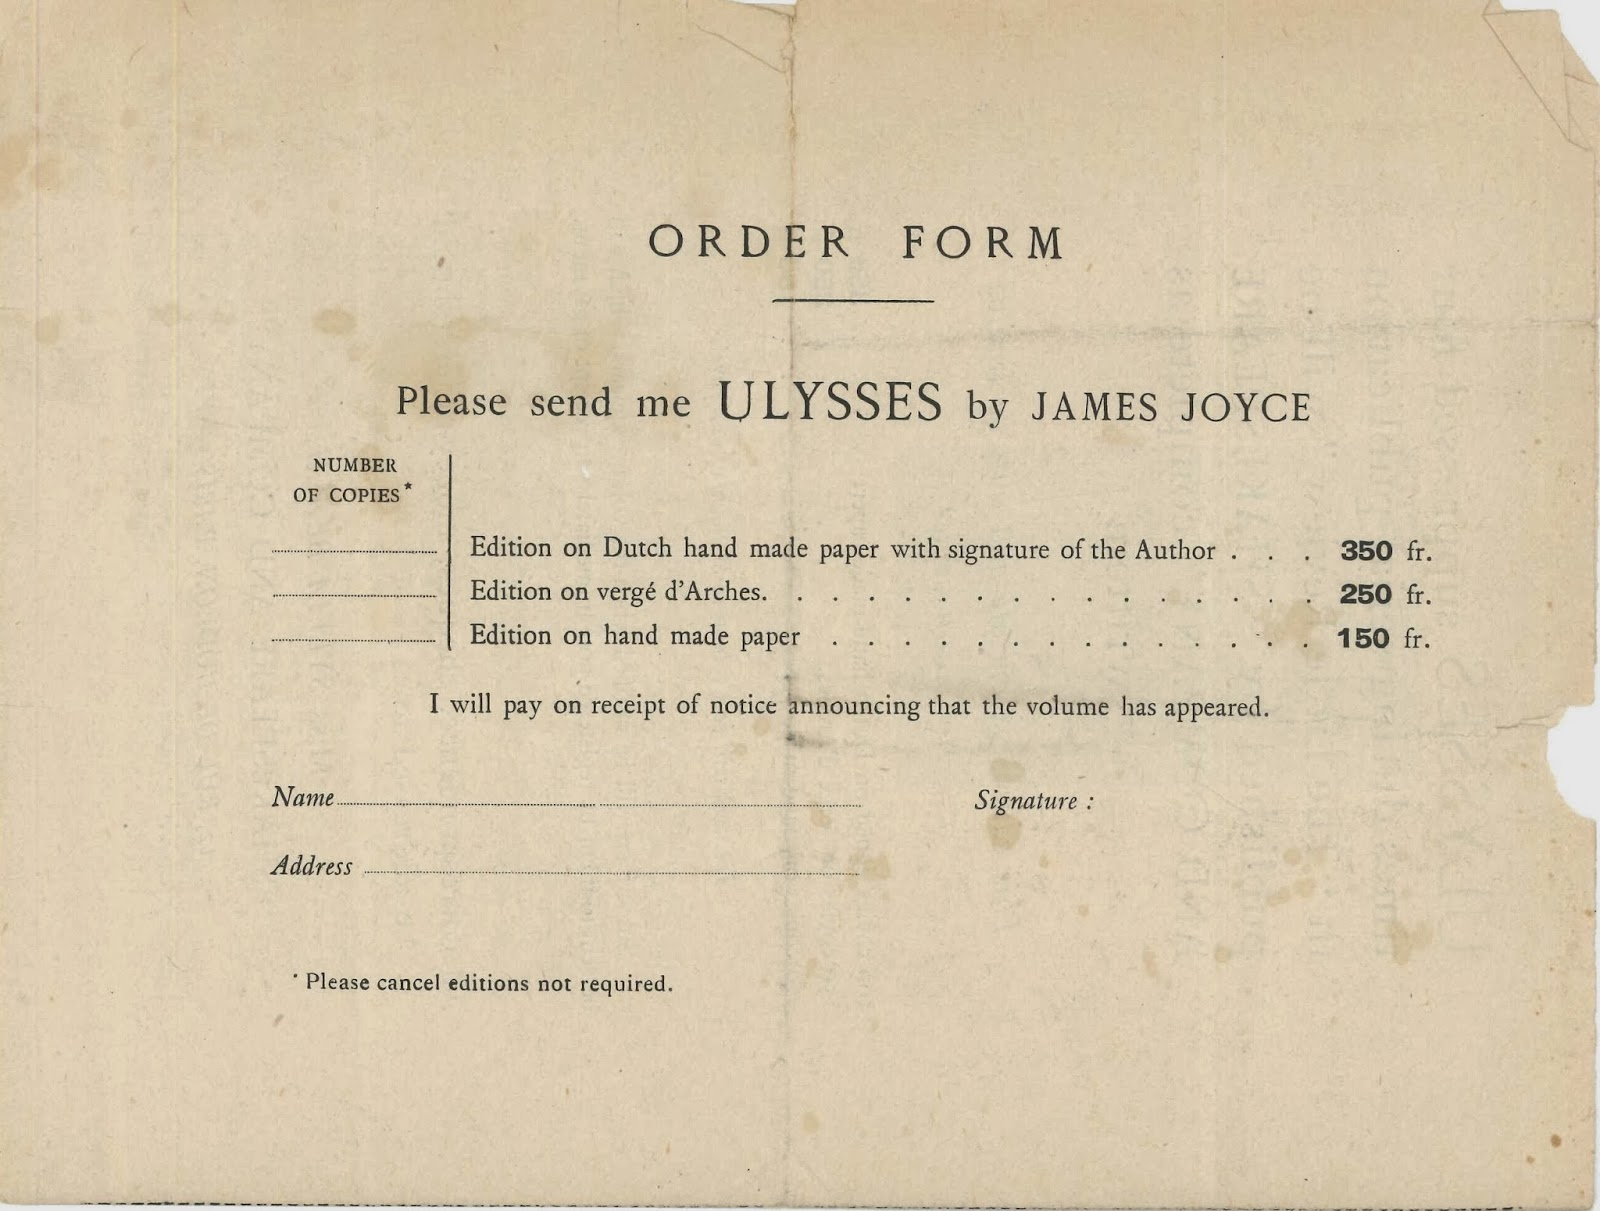 A printed order form.